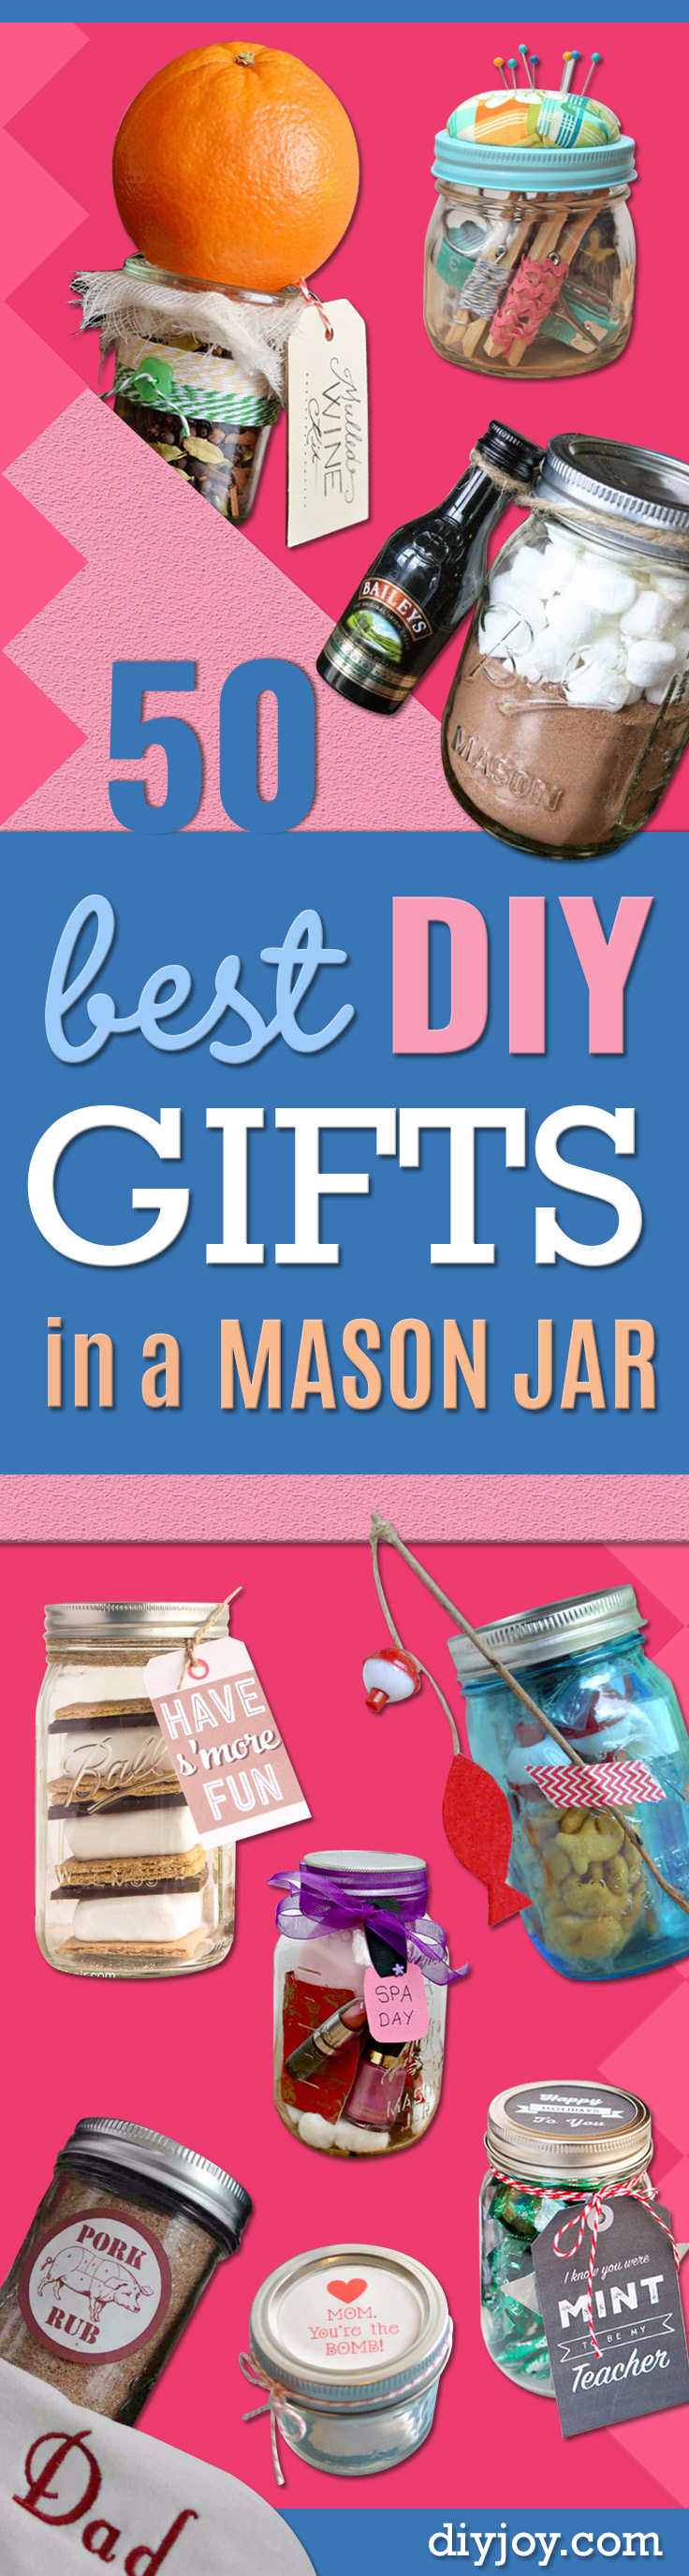 DIY Mason Jar Gifts - Gift In A Jar Ideas- Cute Mason Jar Crafts and Recipe Ideas that Make Great DIY Christmas Presents for Friends and Family - Gifts for Her, Him, Mom and Dad - Easy Gift in A Jar